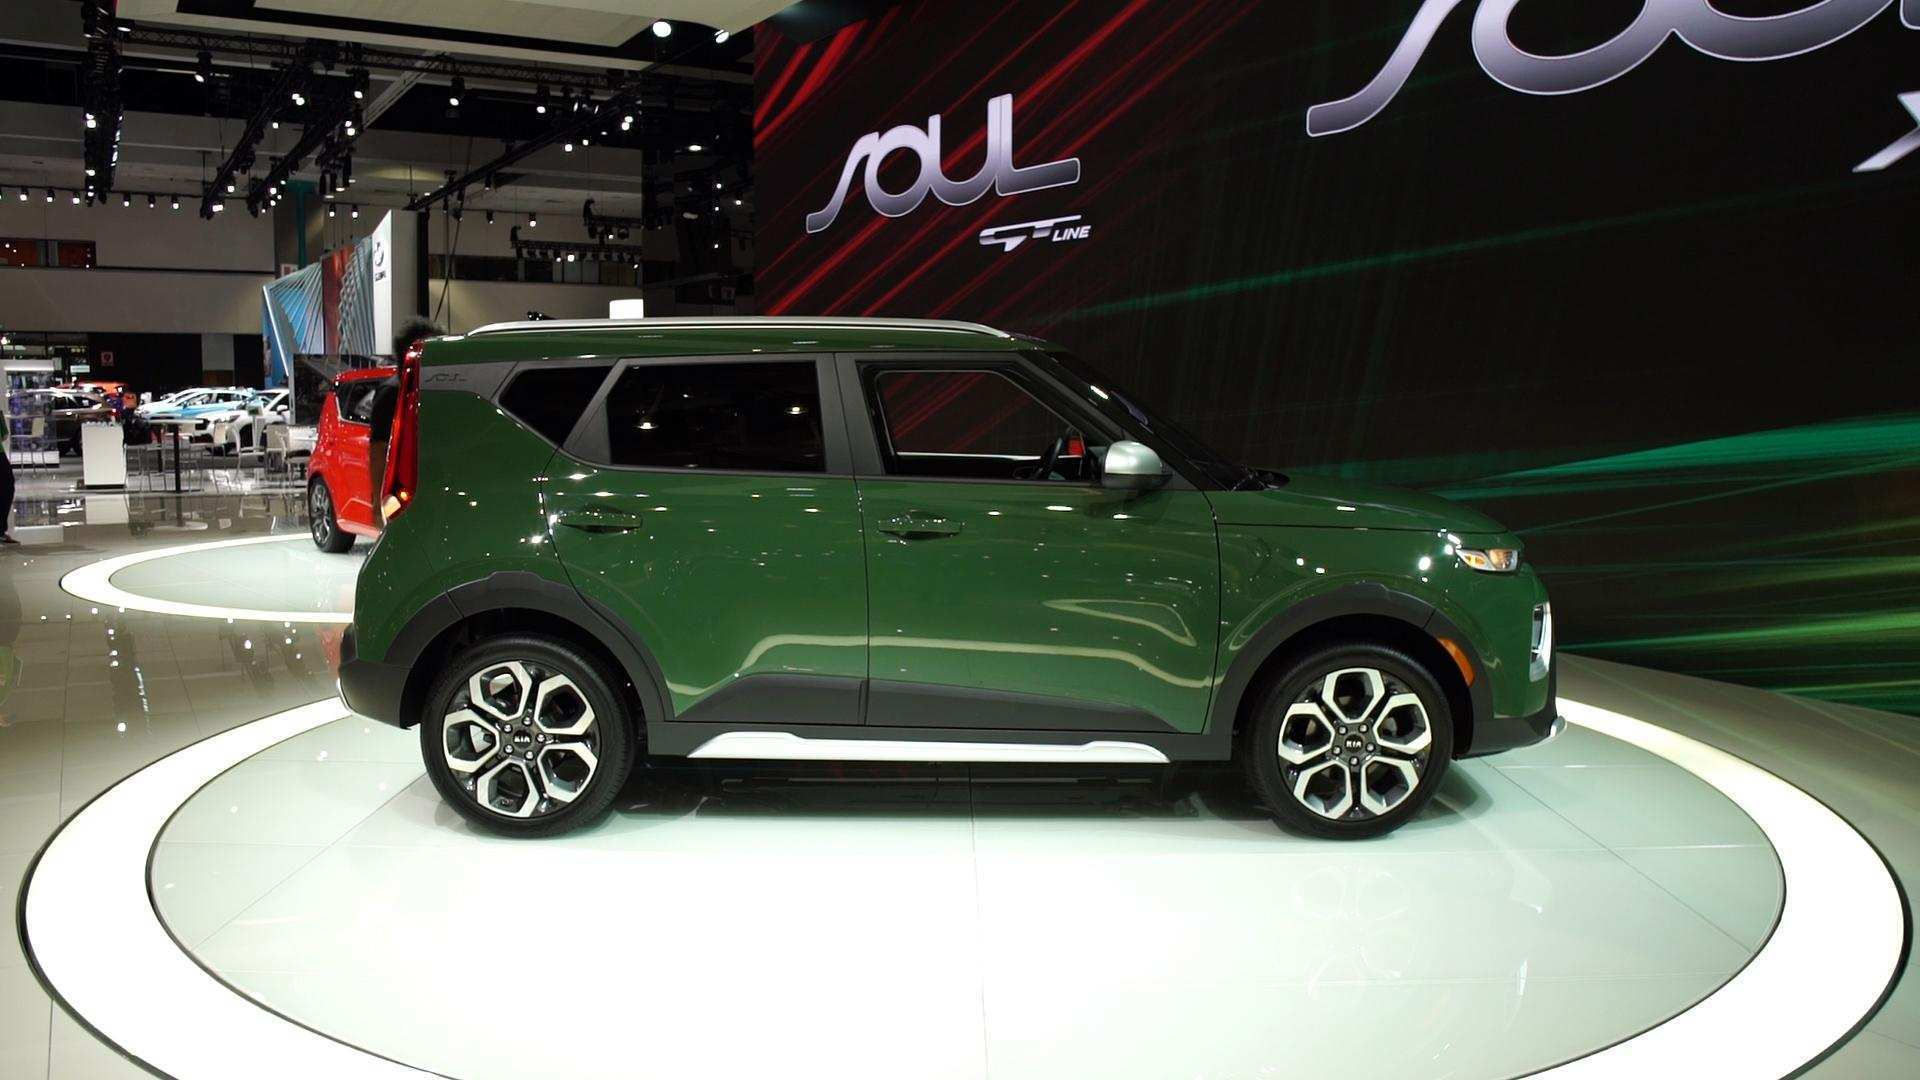 51 The Best 2020 Kia Soul Horsepower Performance And New Engine